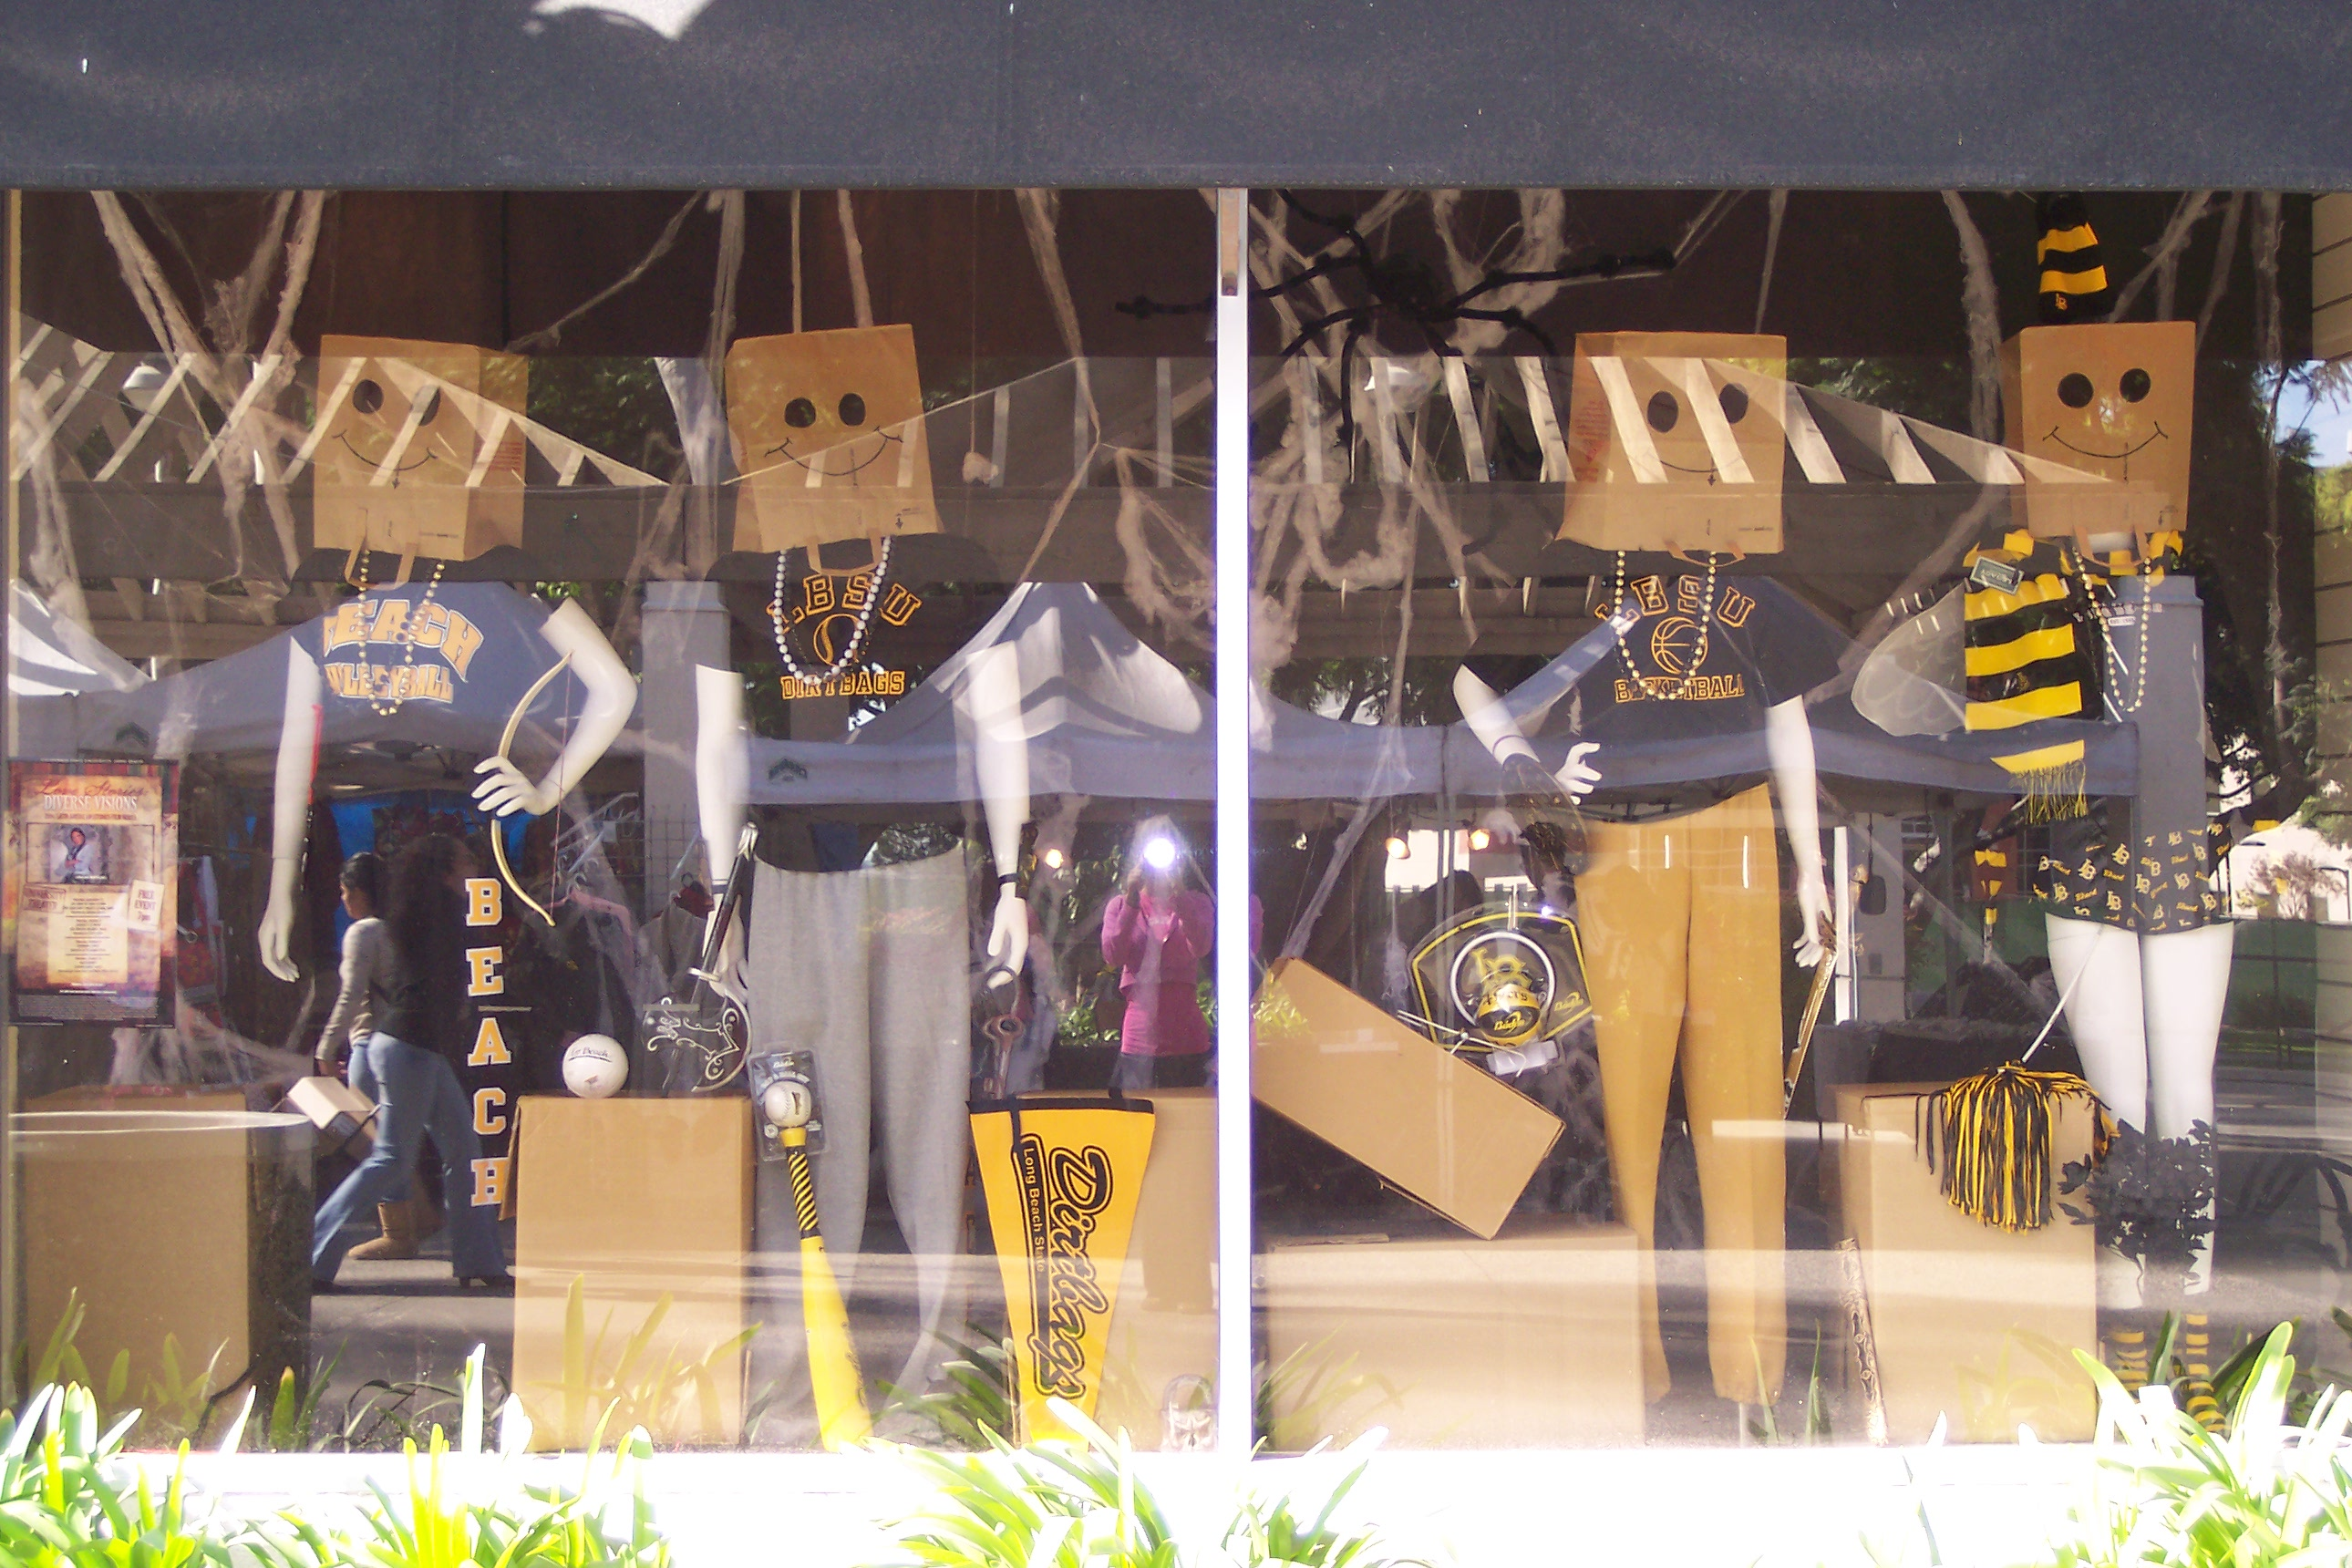 Even mannequins from window displays are getting ready for Halloween with happy masks made of paper bags.